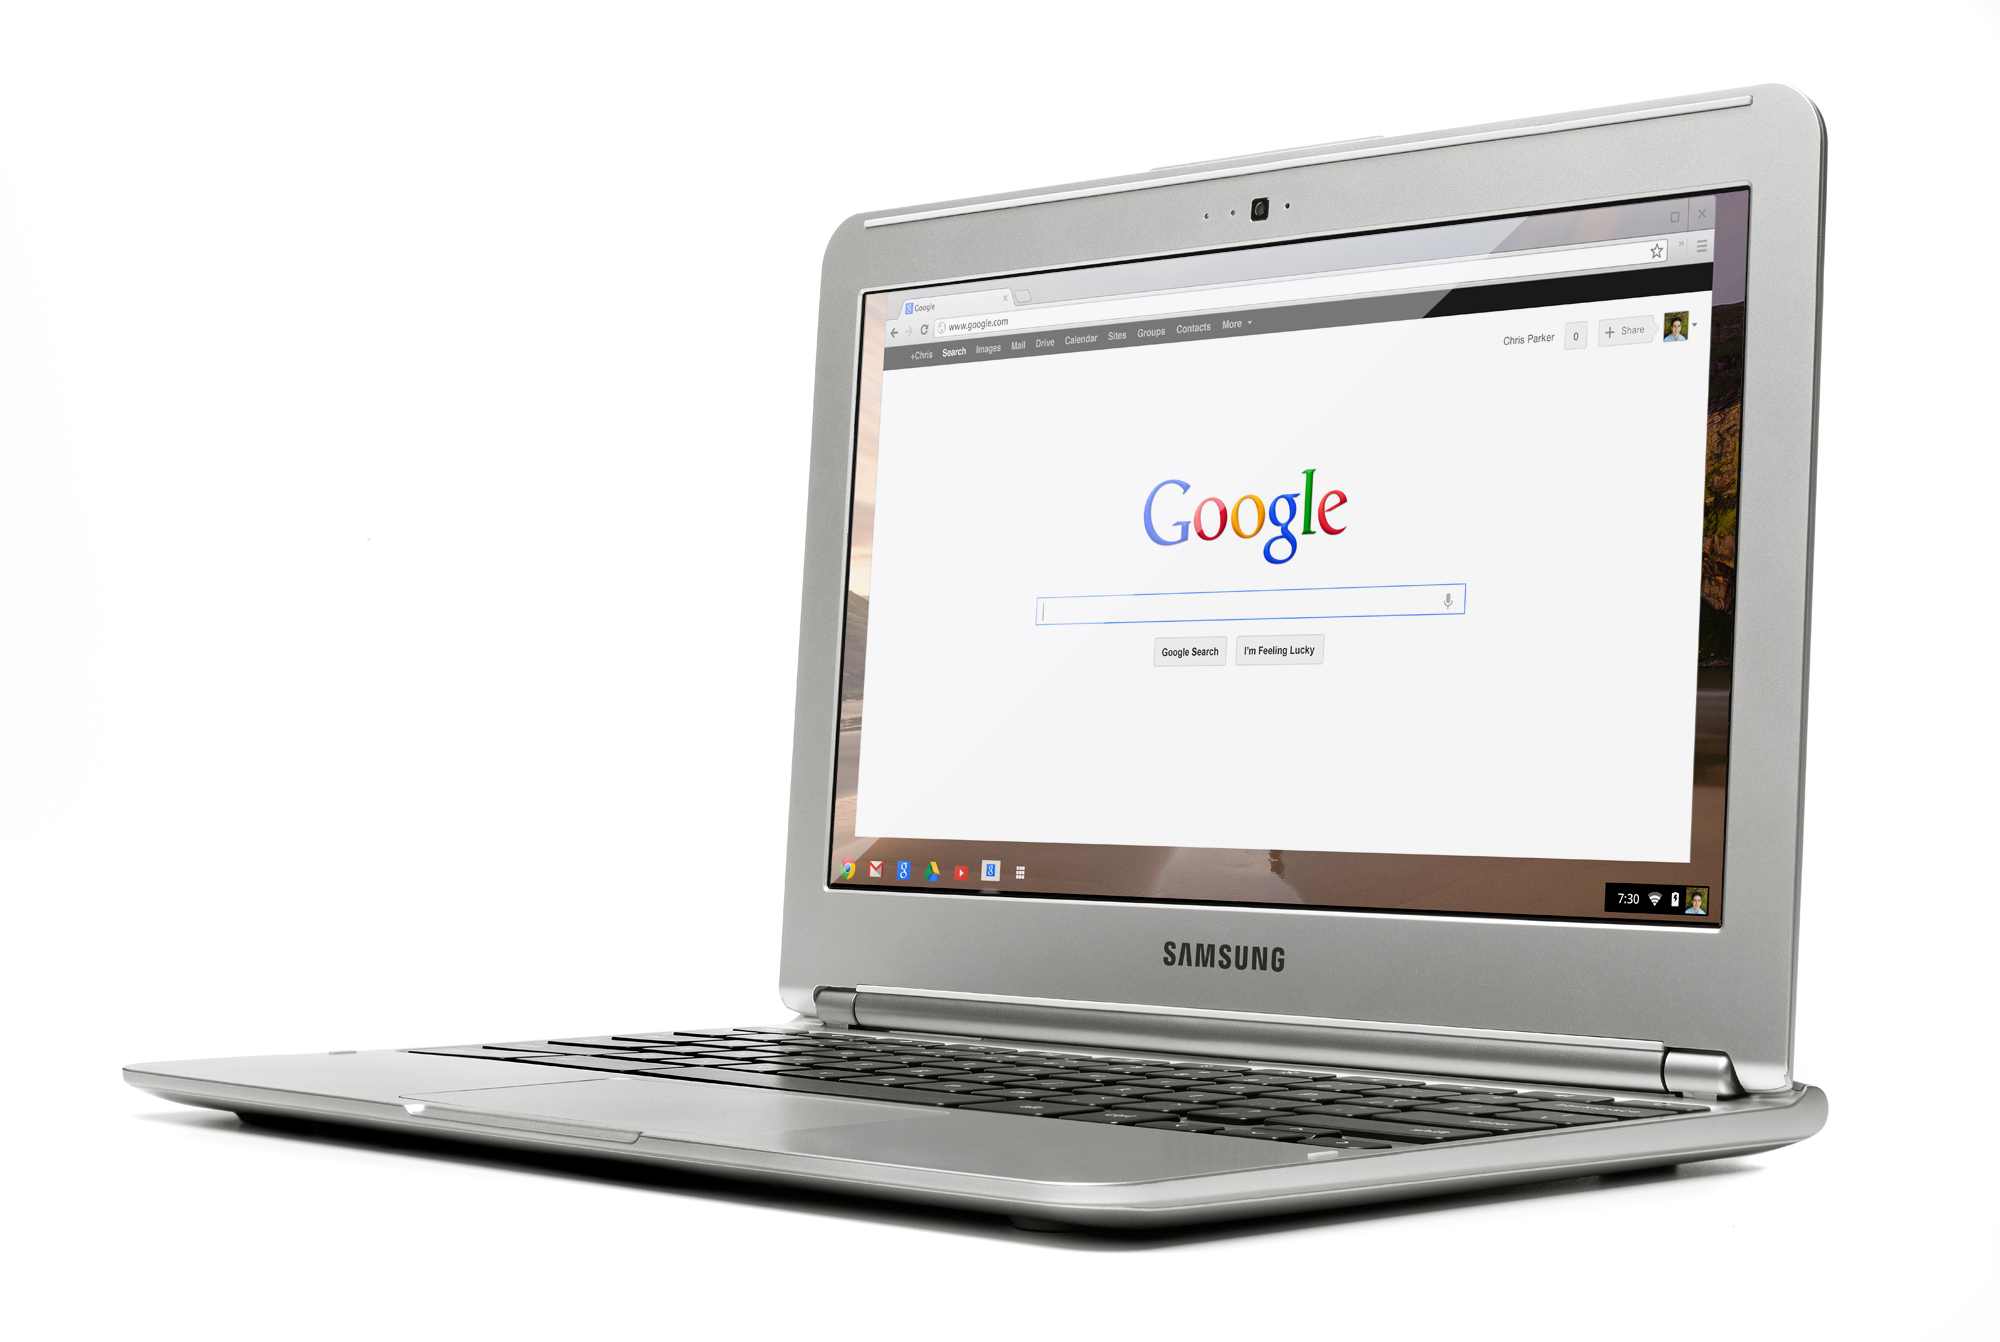 Why I bought a Chromebook instead of an iPad